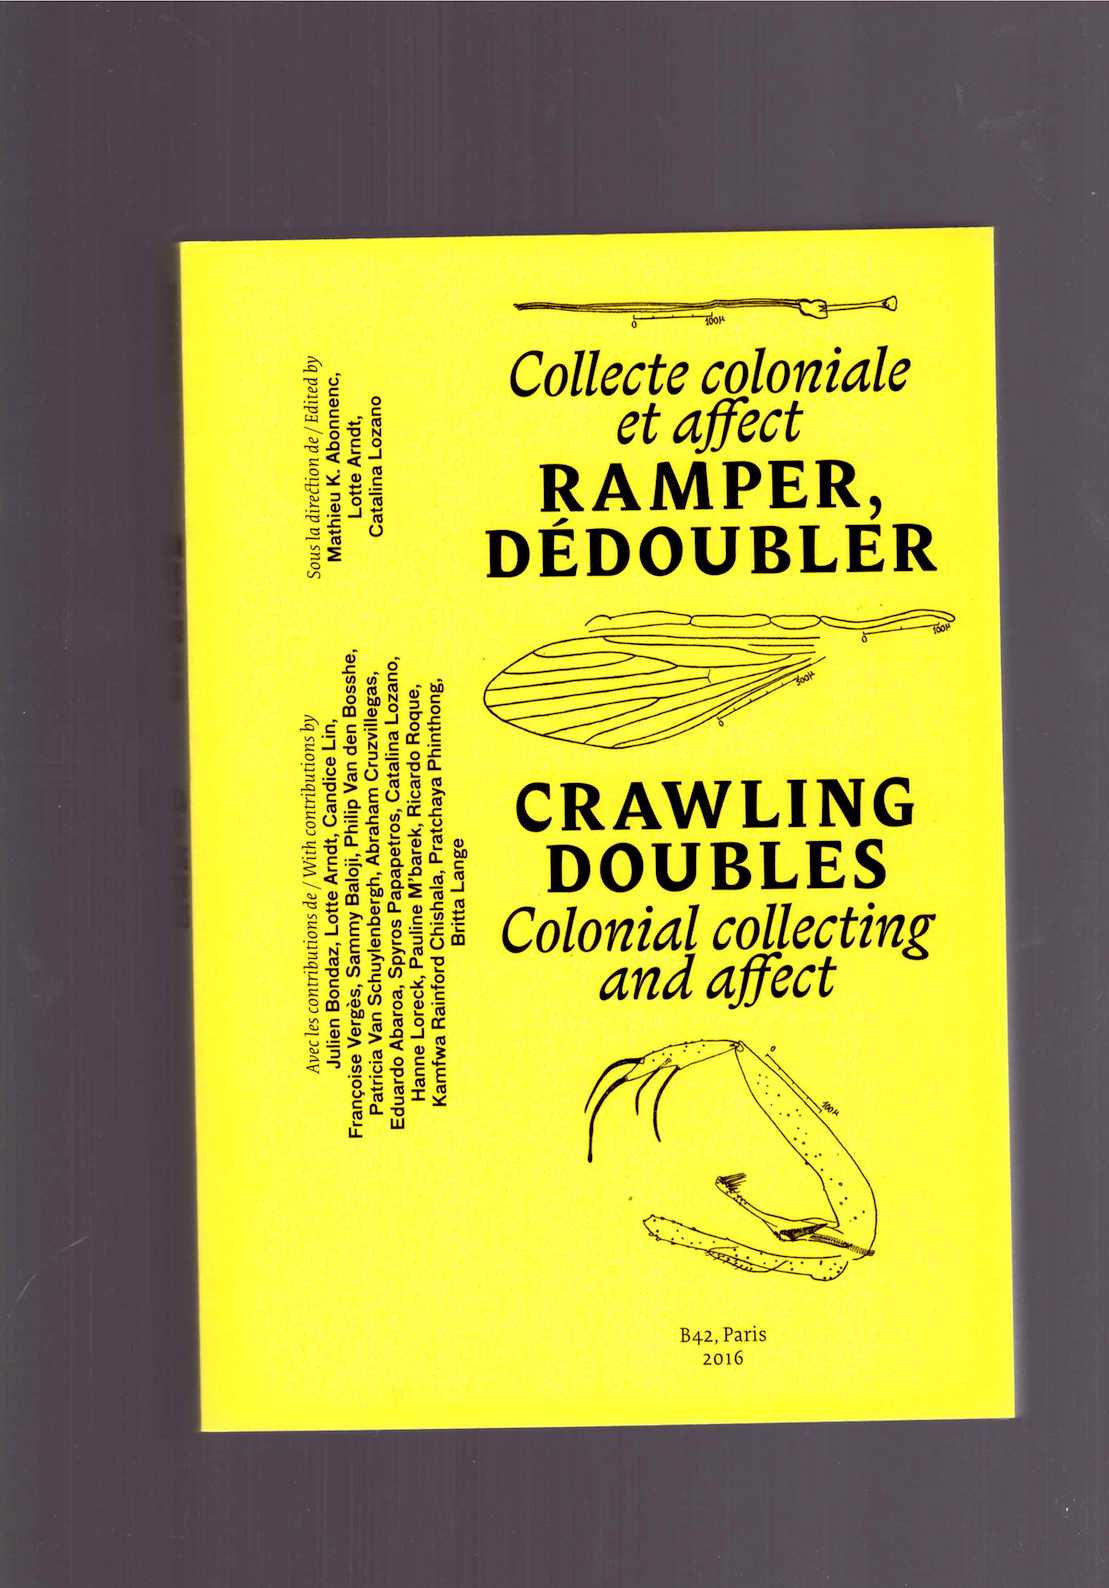 ABONNENC, Mathieu K.; ARNDT, Lotte; LOZANO, Catalina (eds.) - Ramper, Dédoubler. Collecte coloniale et affect / Crawling Doubles. Colonial collecting and affect